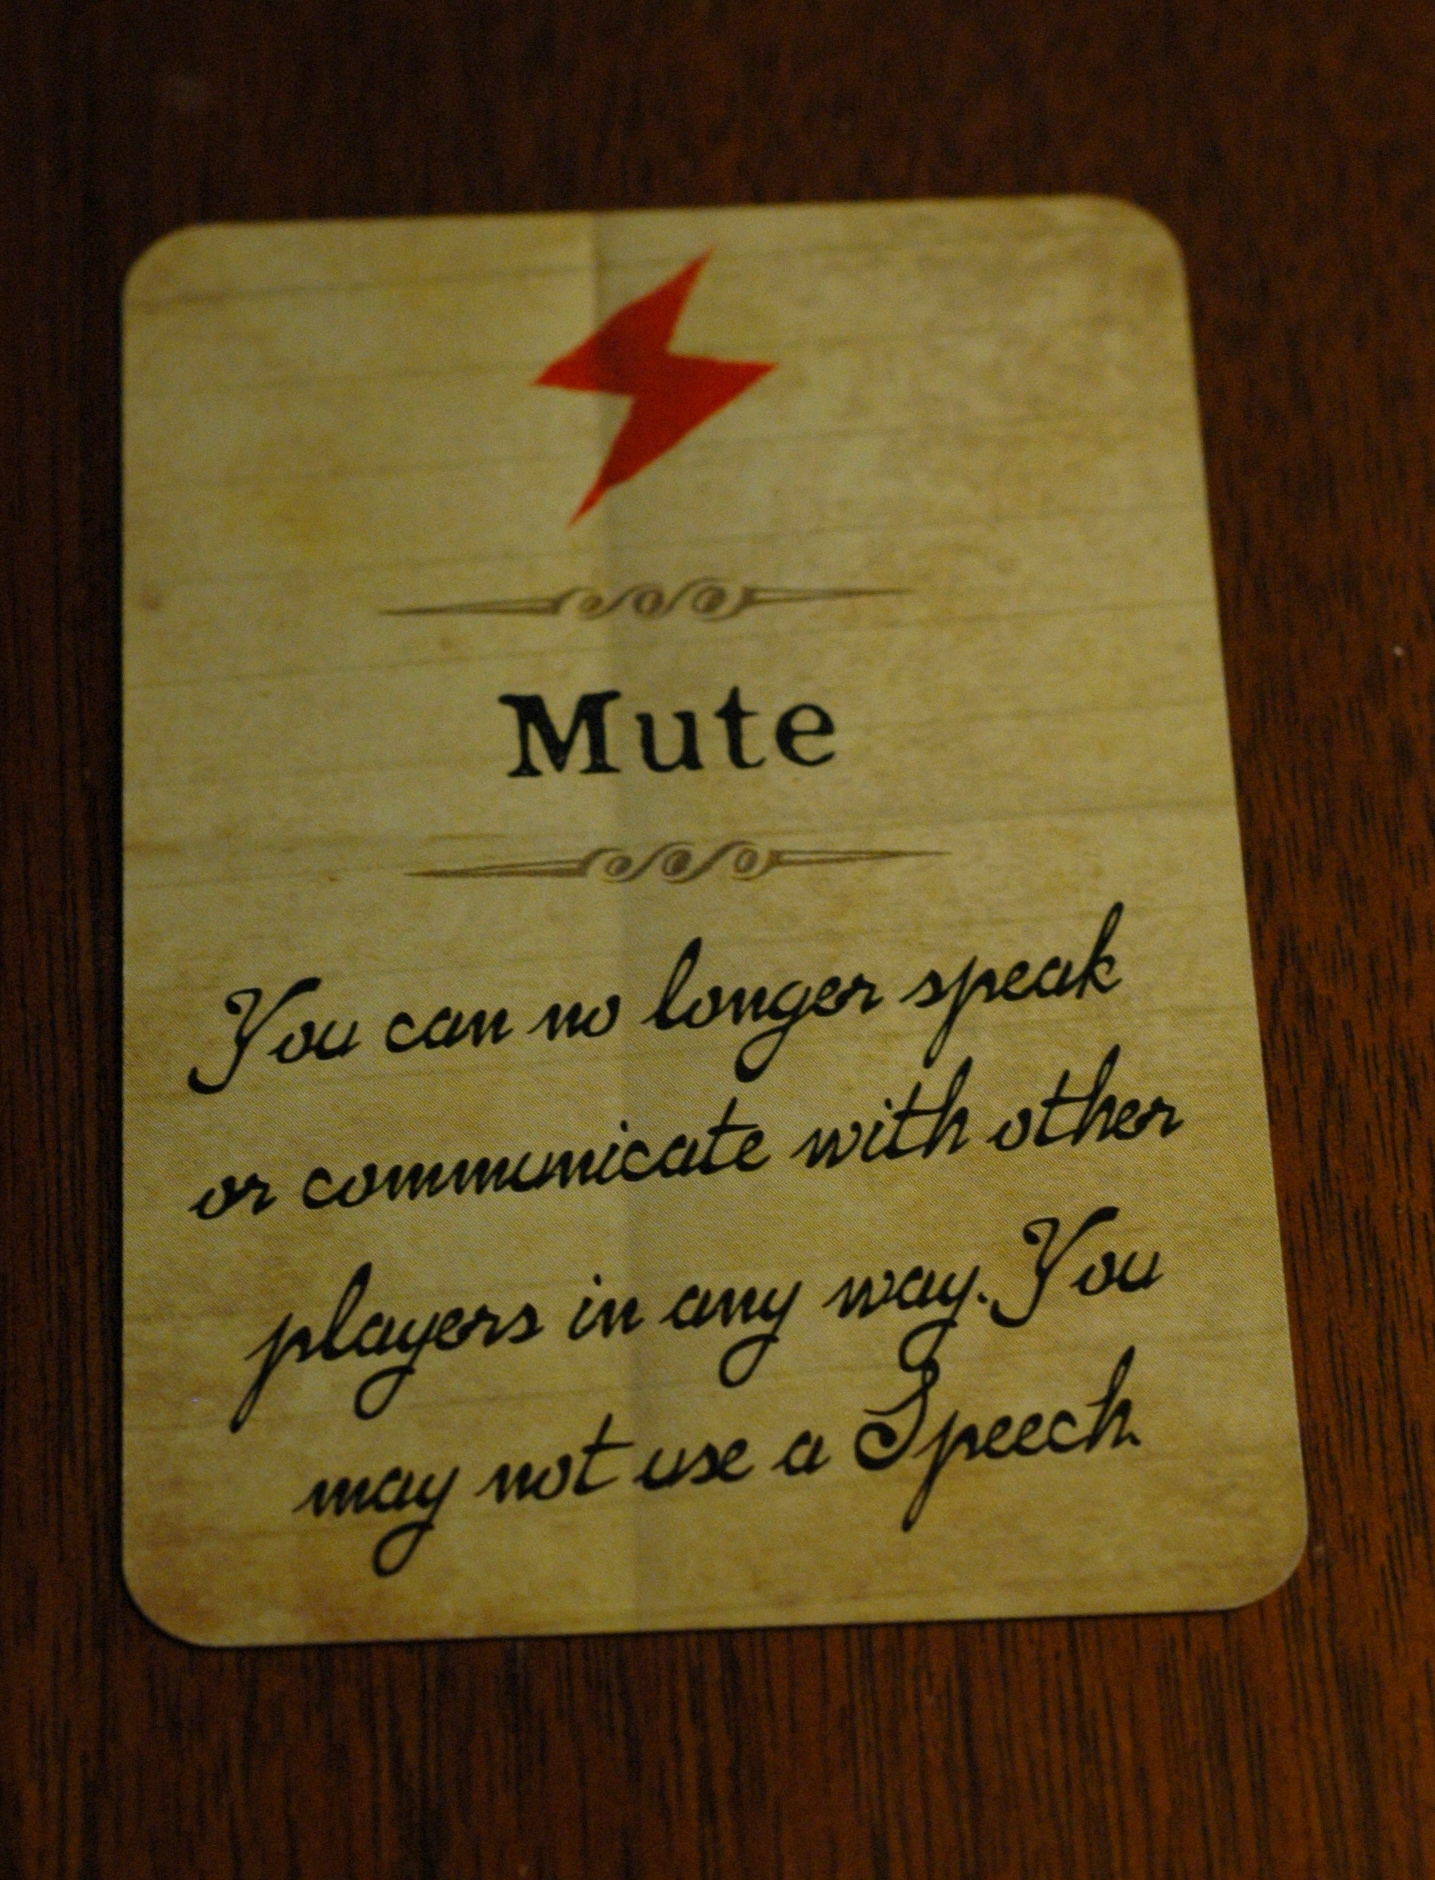 """Mute"" card from the game. Photo used with permission of the author and used for purposes of critique."